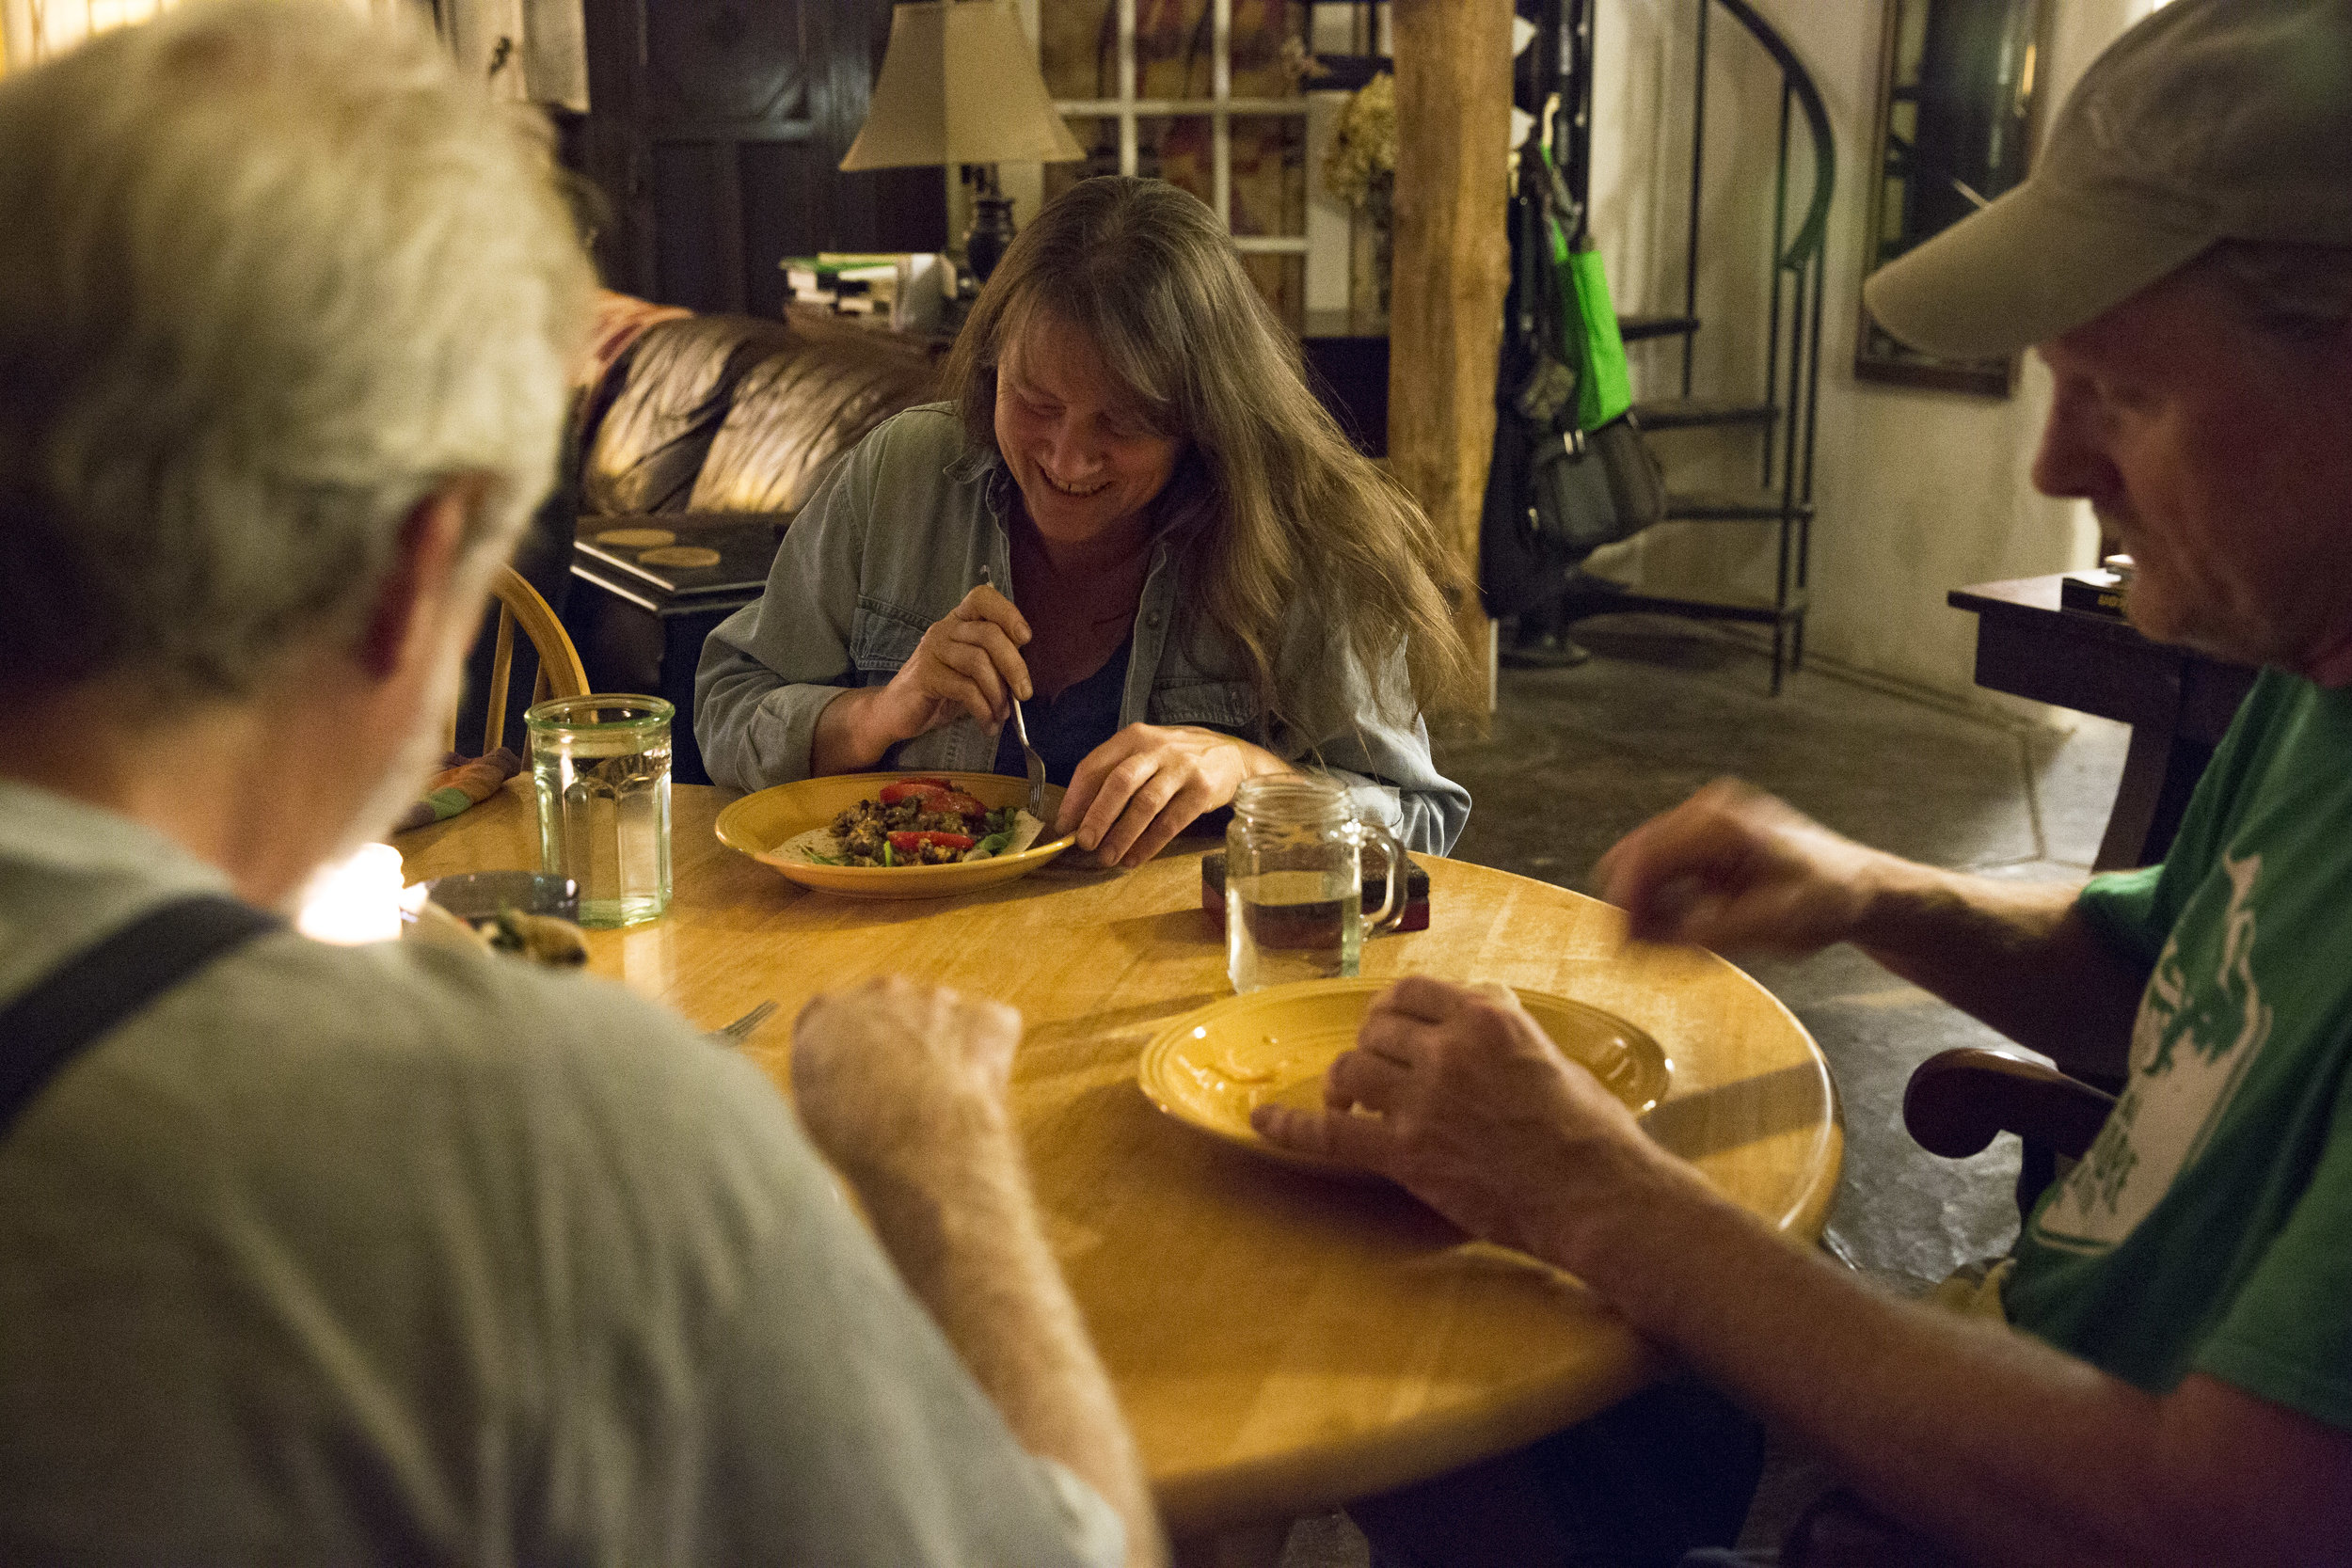 Lorian Moore eats dinner in her living room with her husband Rex Rohrer (right) and their friend Barry Bookout (left).